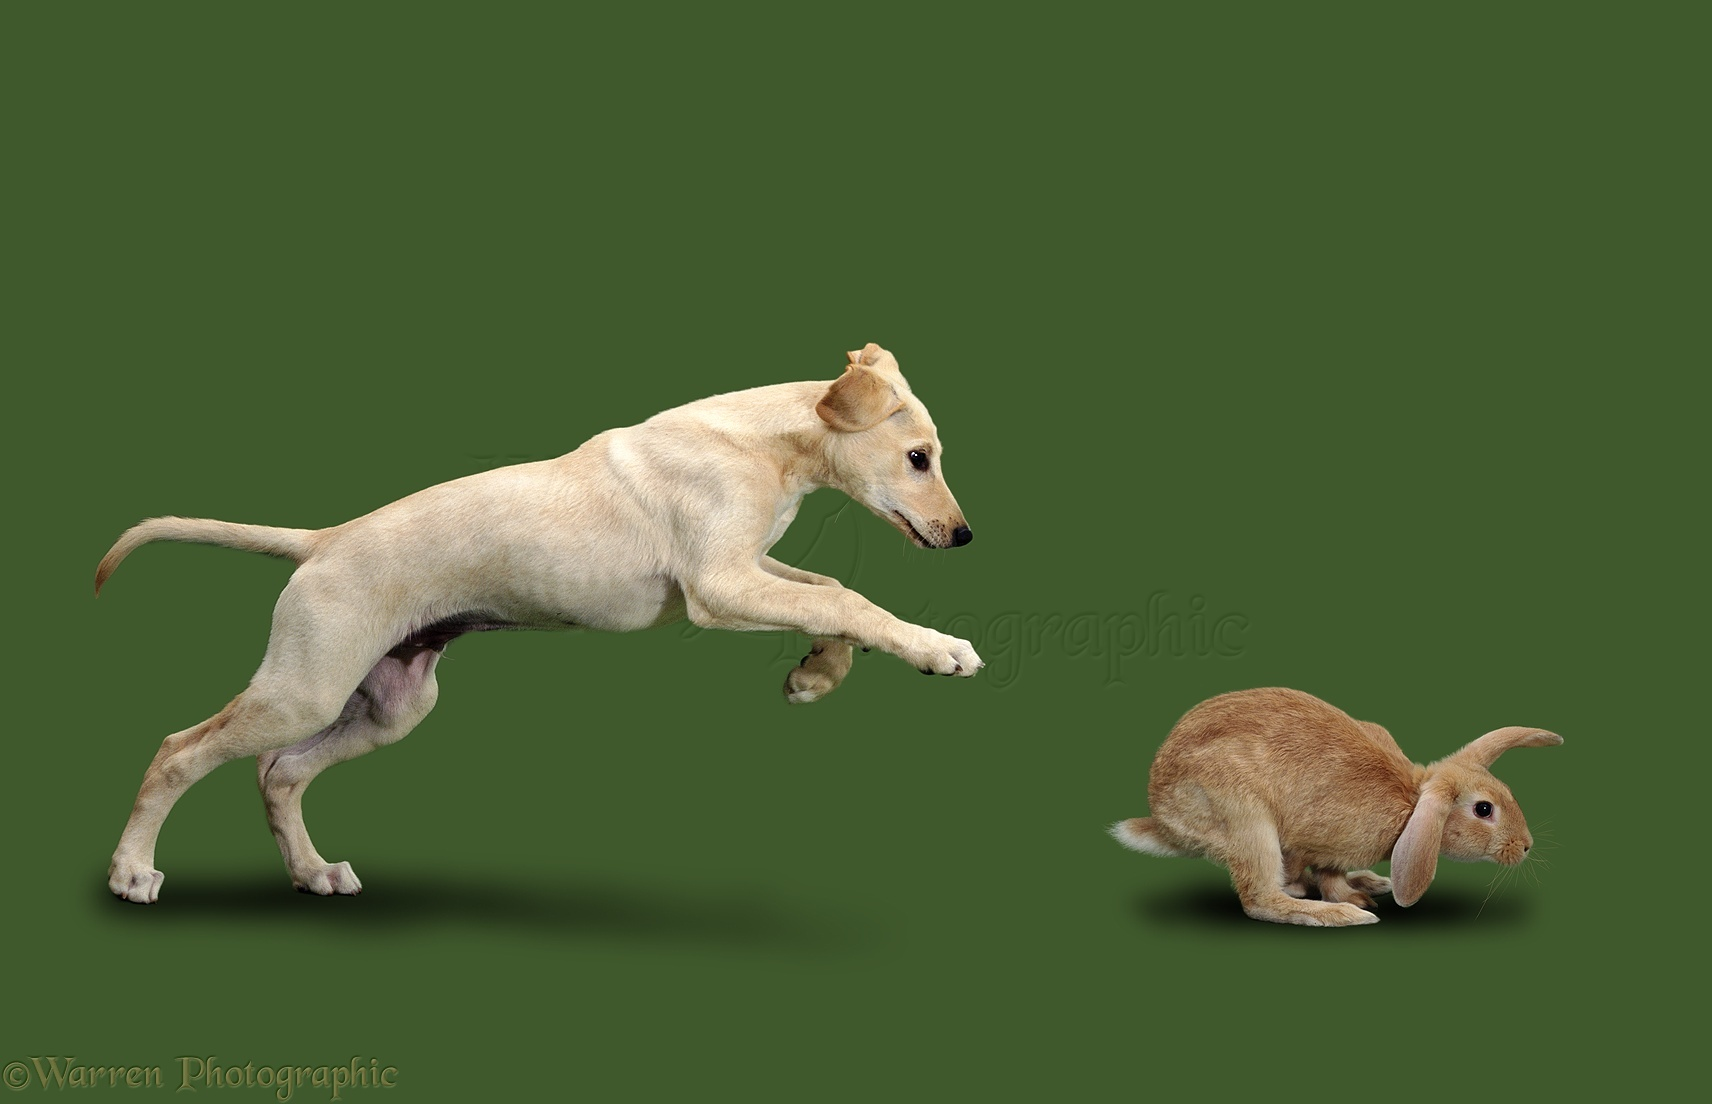 Pets: Saluki Lurcher pup chasing a rabbit photo - WP00182